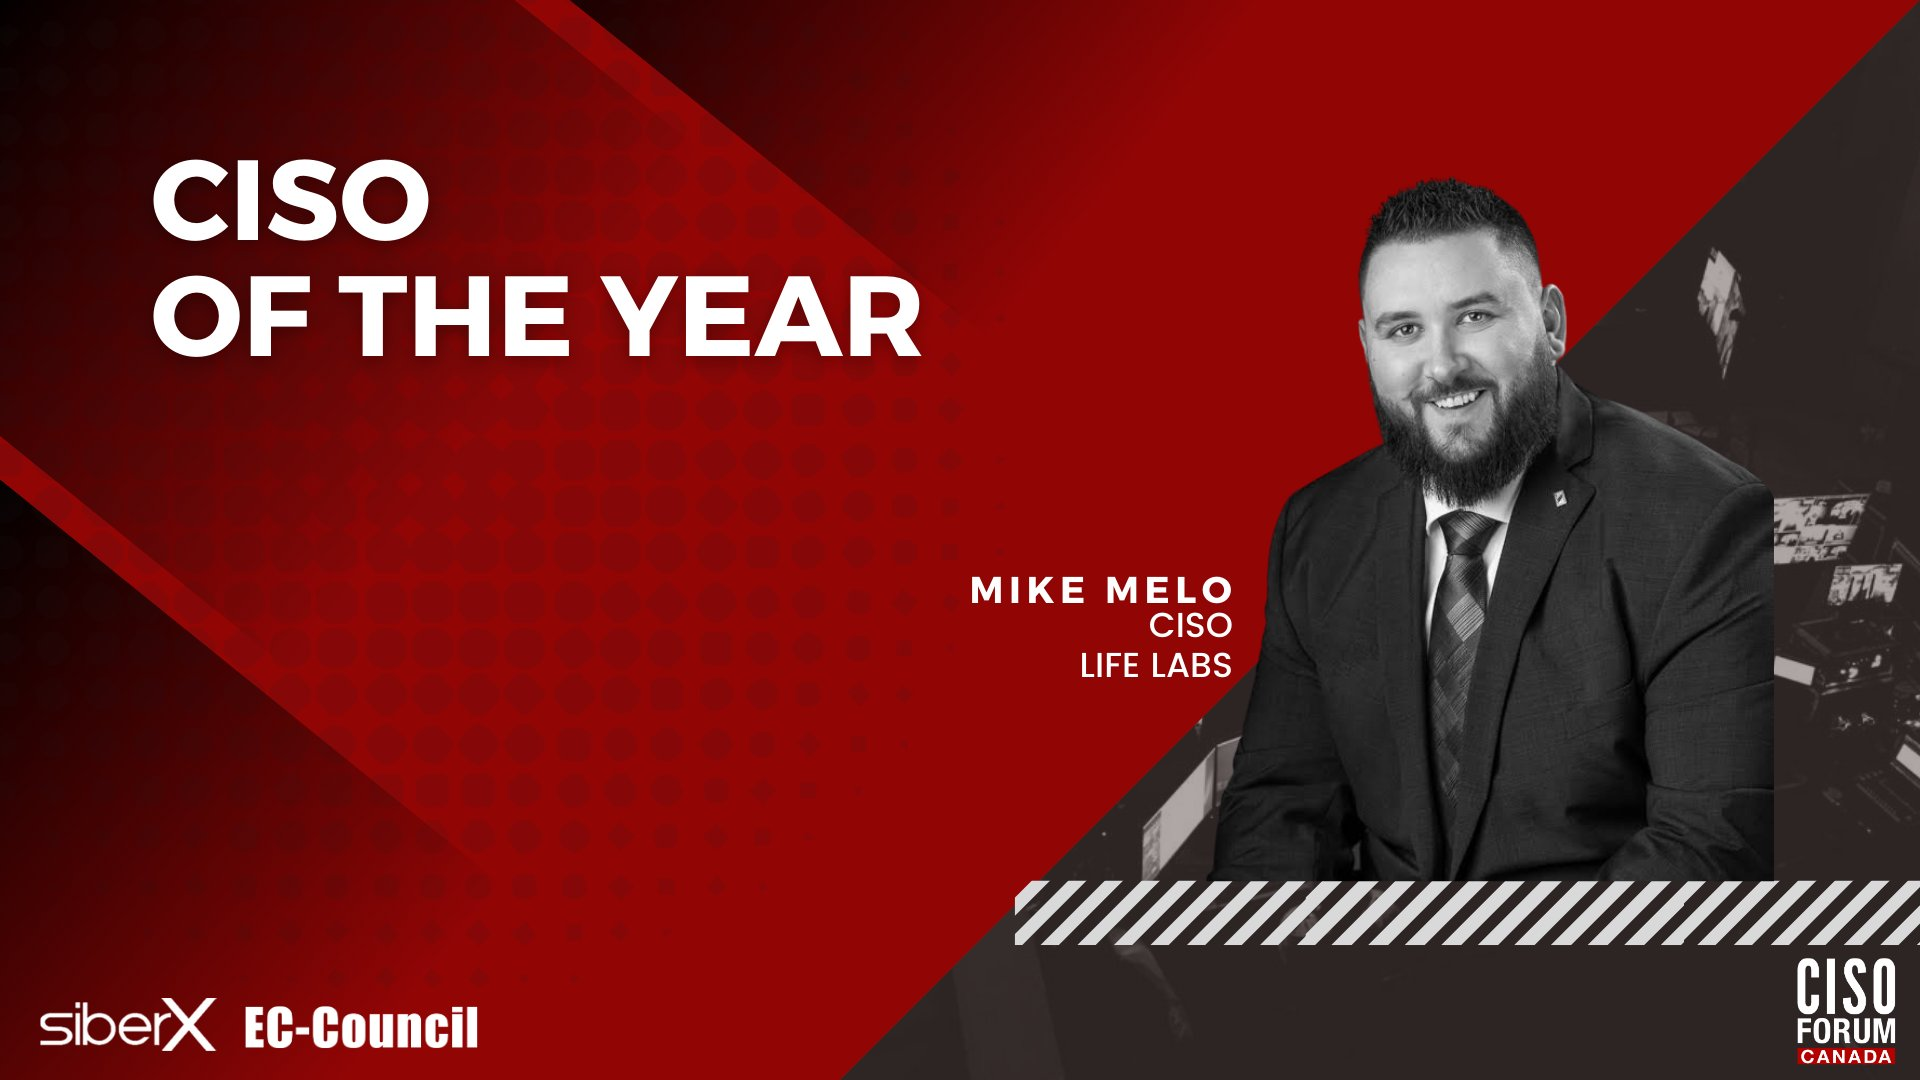 CISO of the year